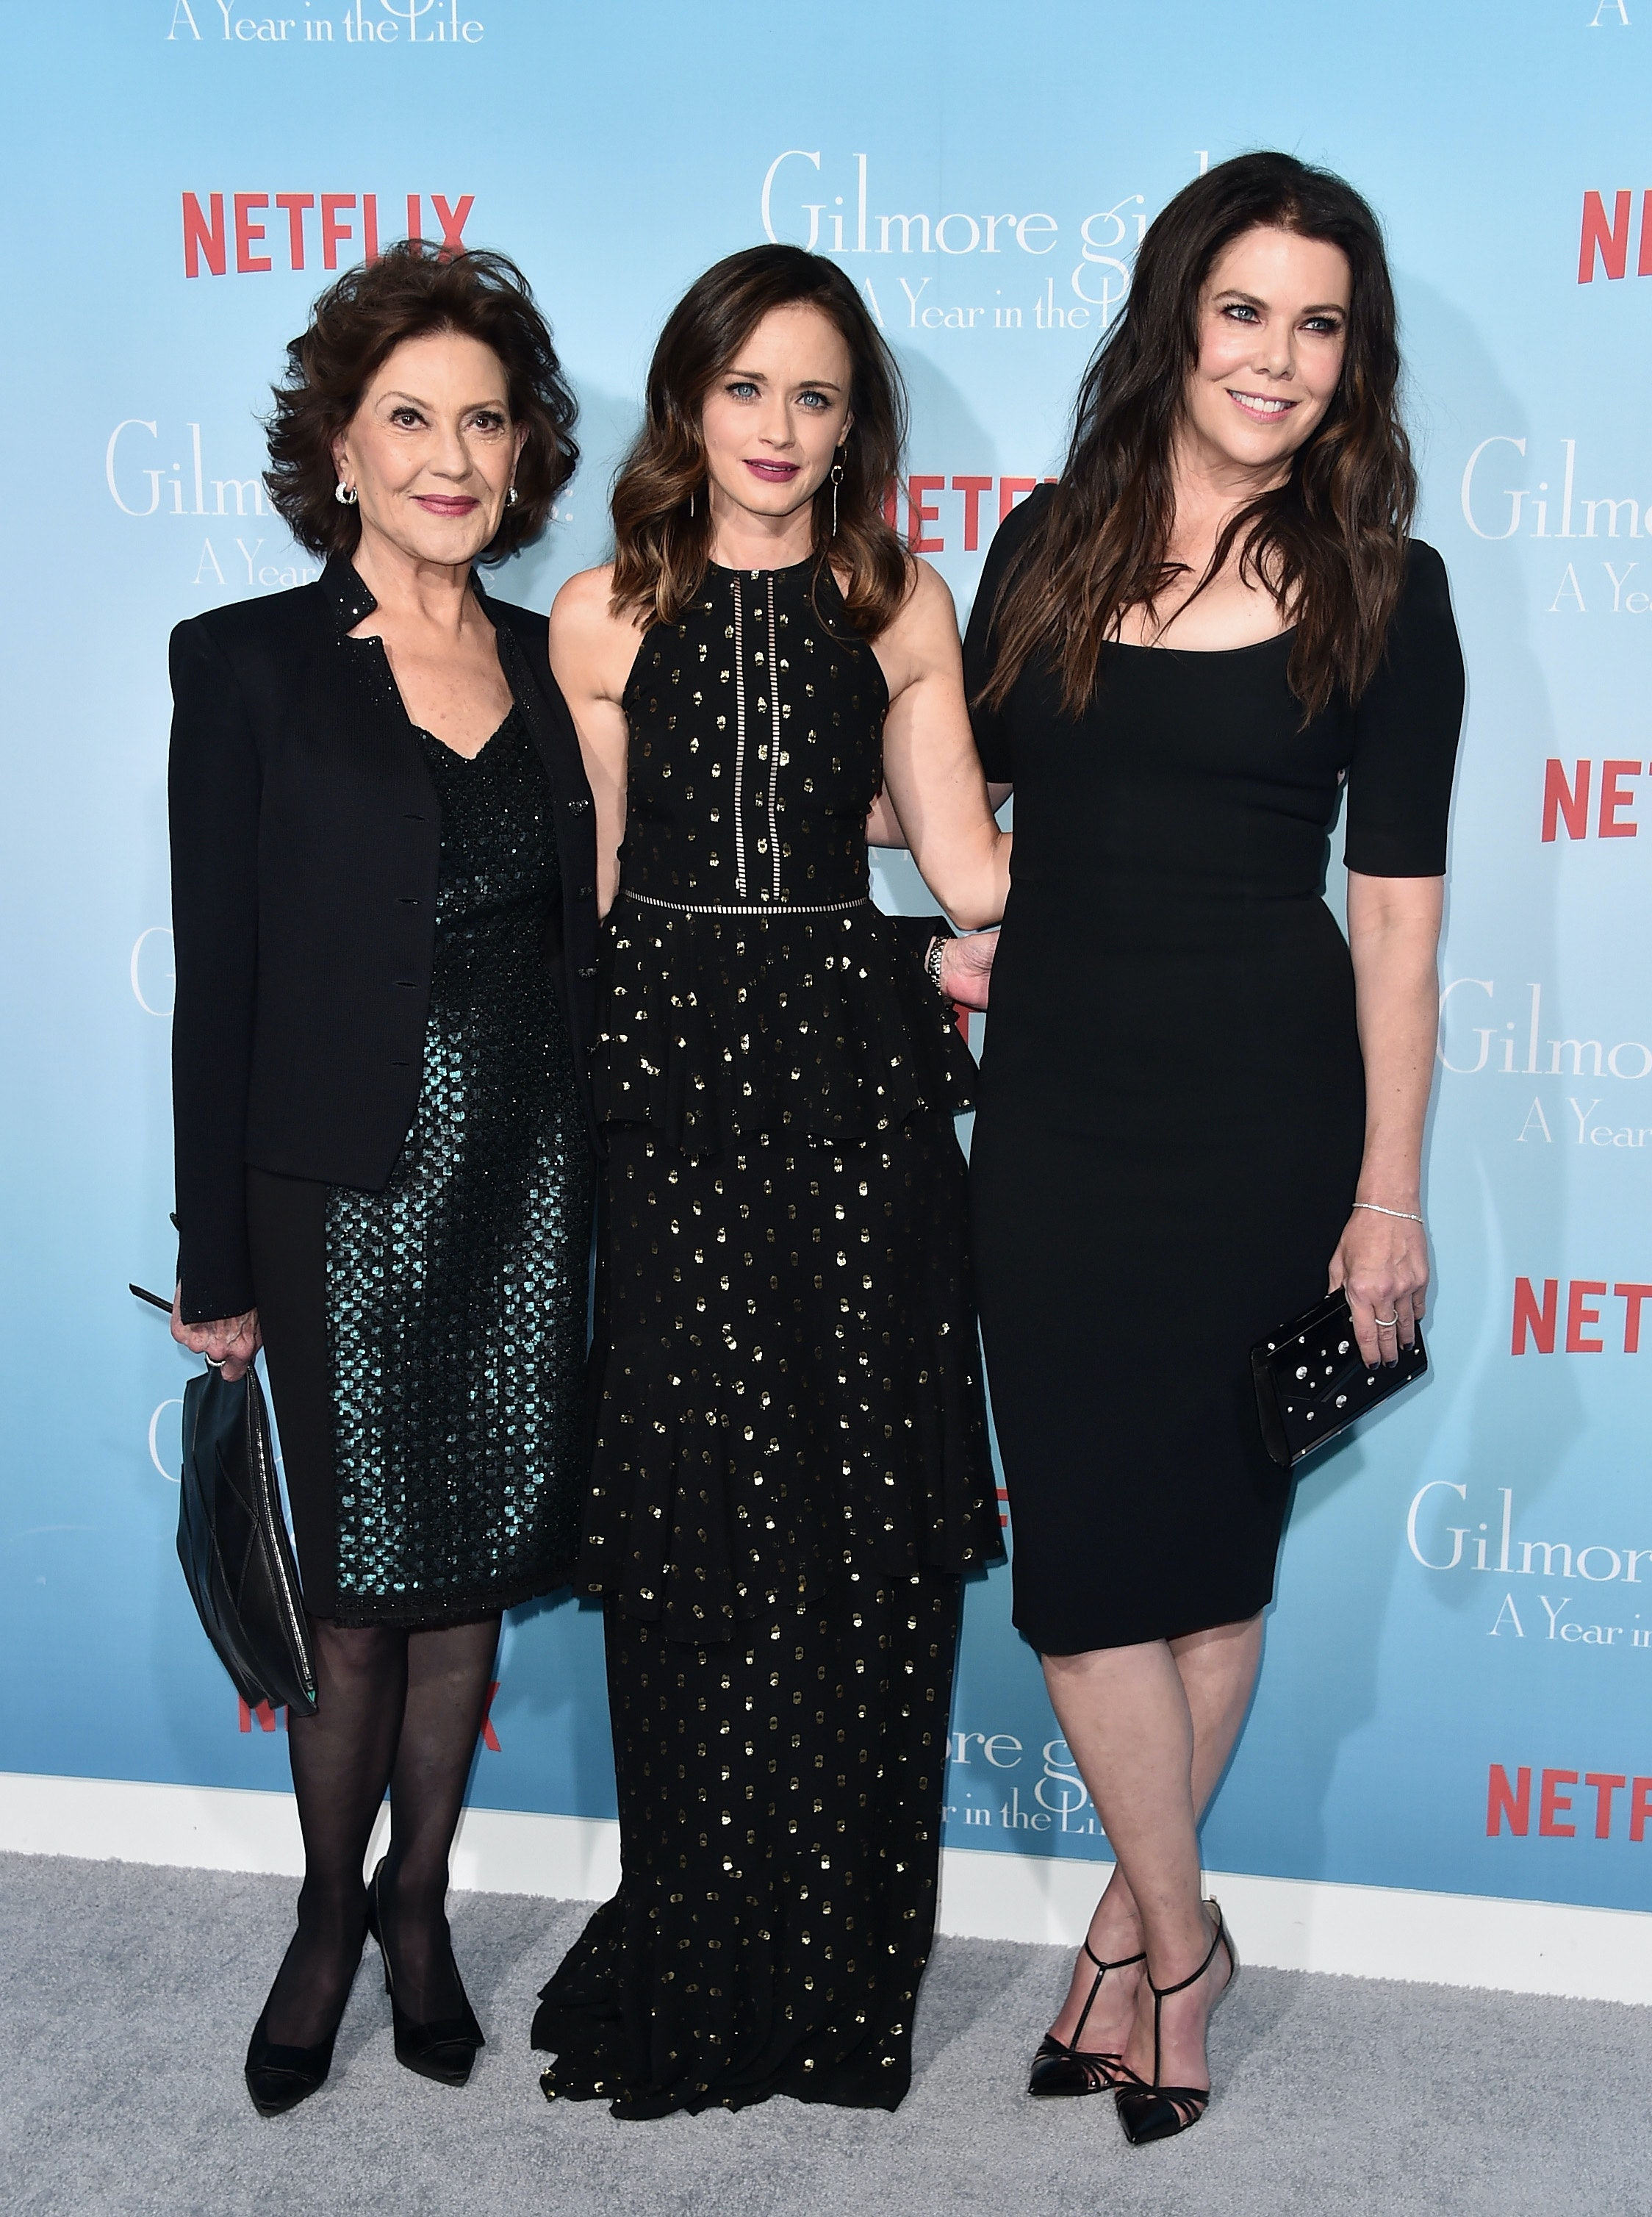 The Gilmore Girls A Year In The Life Premiere Proved That Even The Folks From Stars Hollow Can Look Impossibly Chic Photos